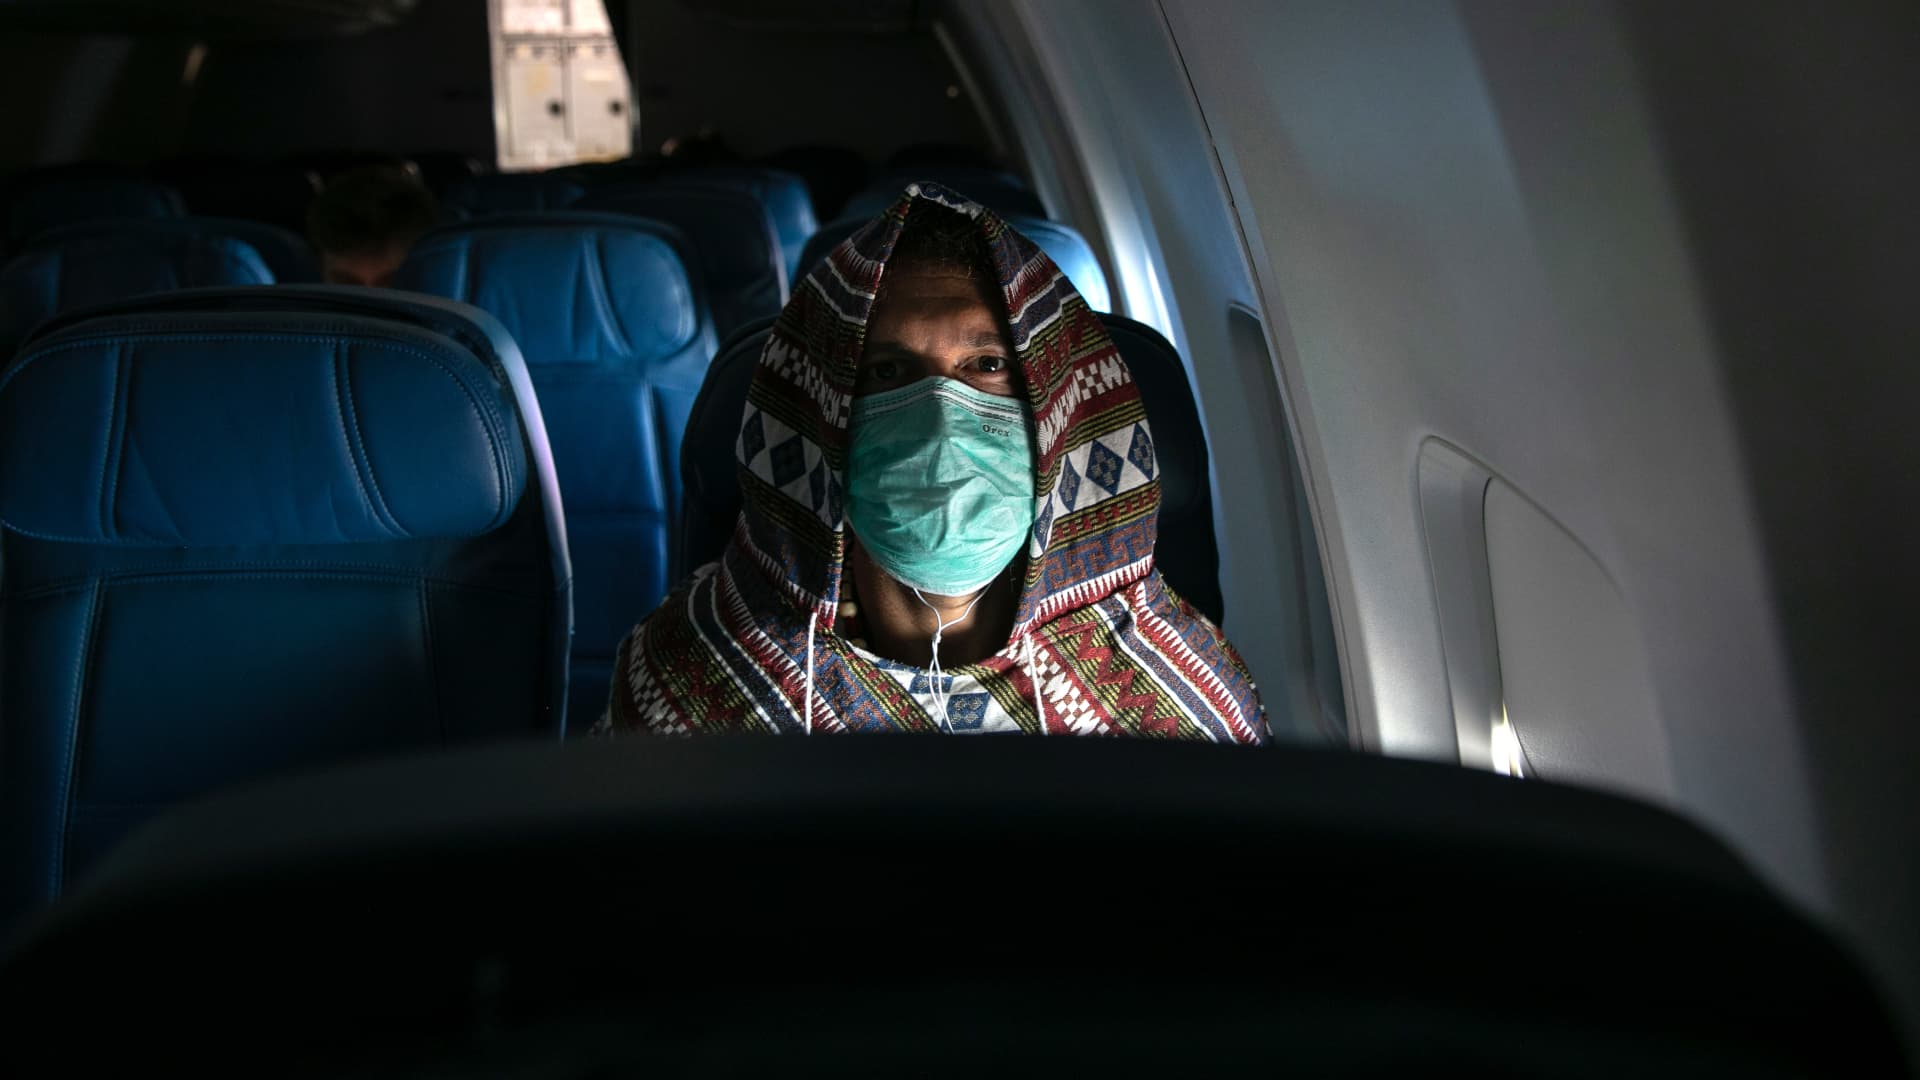 Adam Carver, 38, wears a mask to protect against coronavirus while on a nearly empty Delta flight from Seattle-Tacoma International Airport o JFK on March 15, 2020 near New York City.